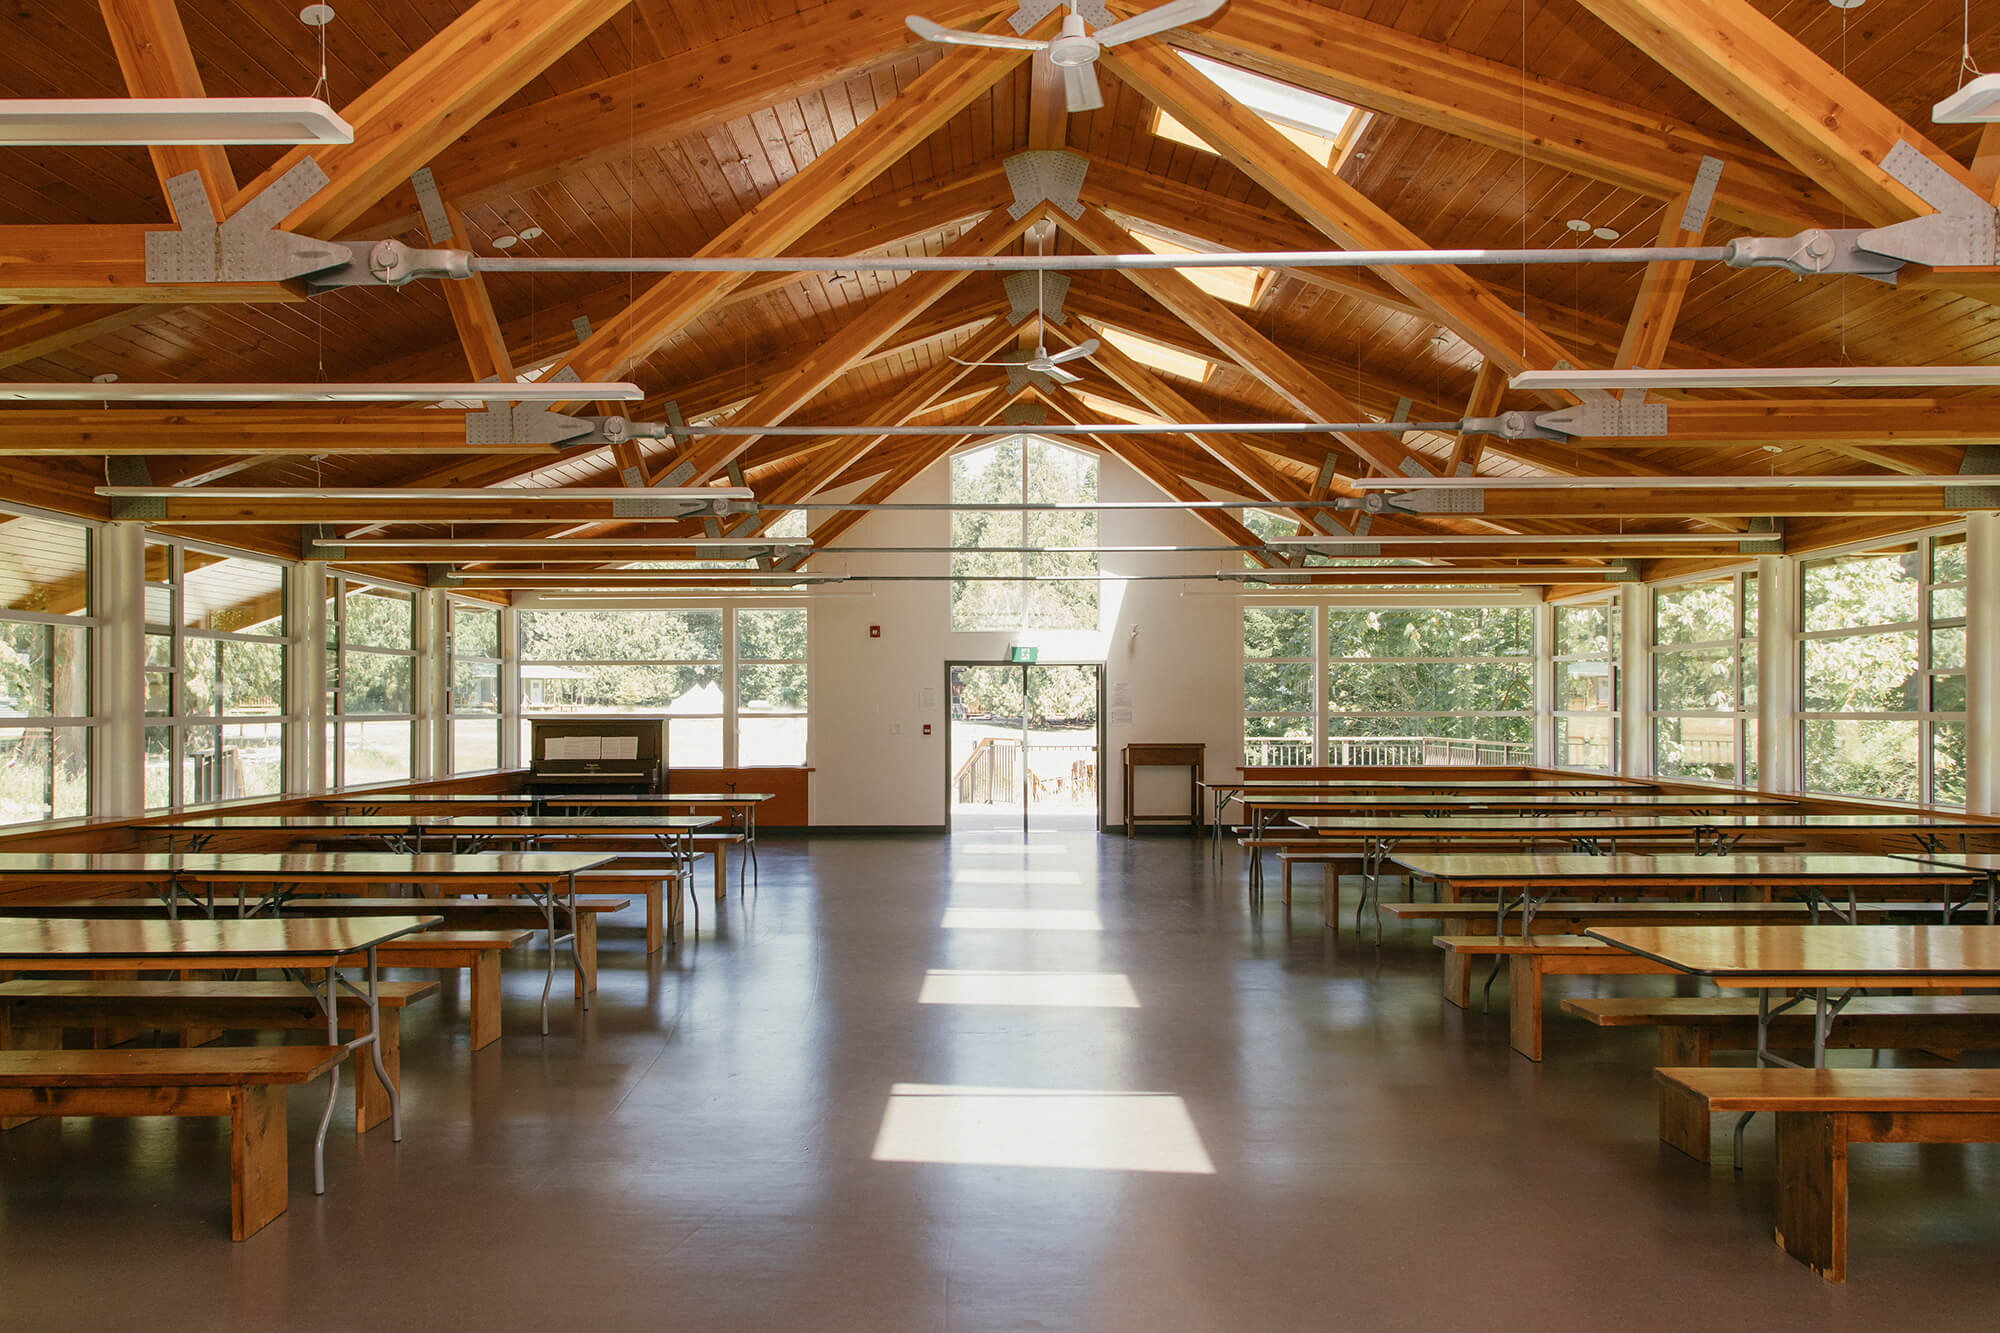 Grounds_Dining Hall_1.jpg